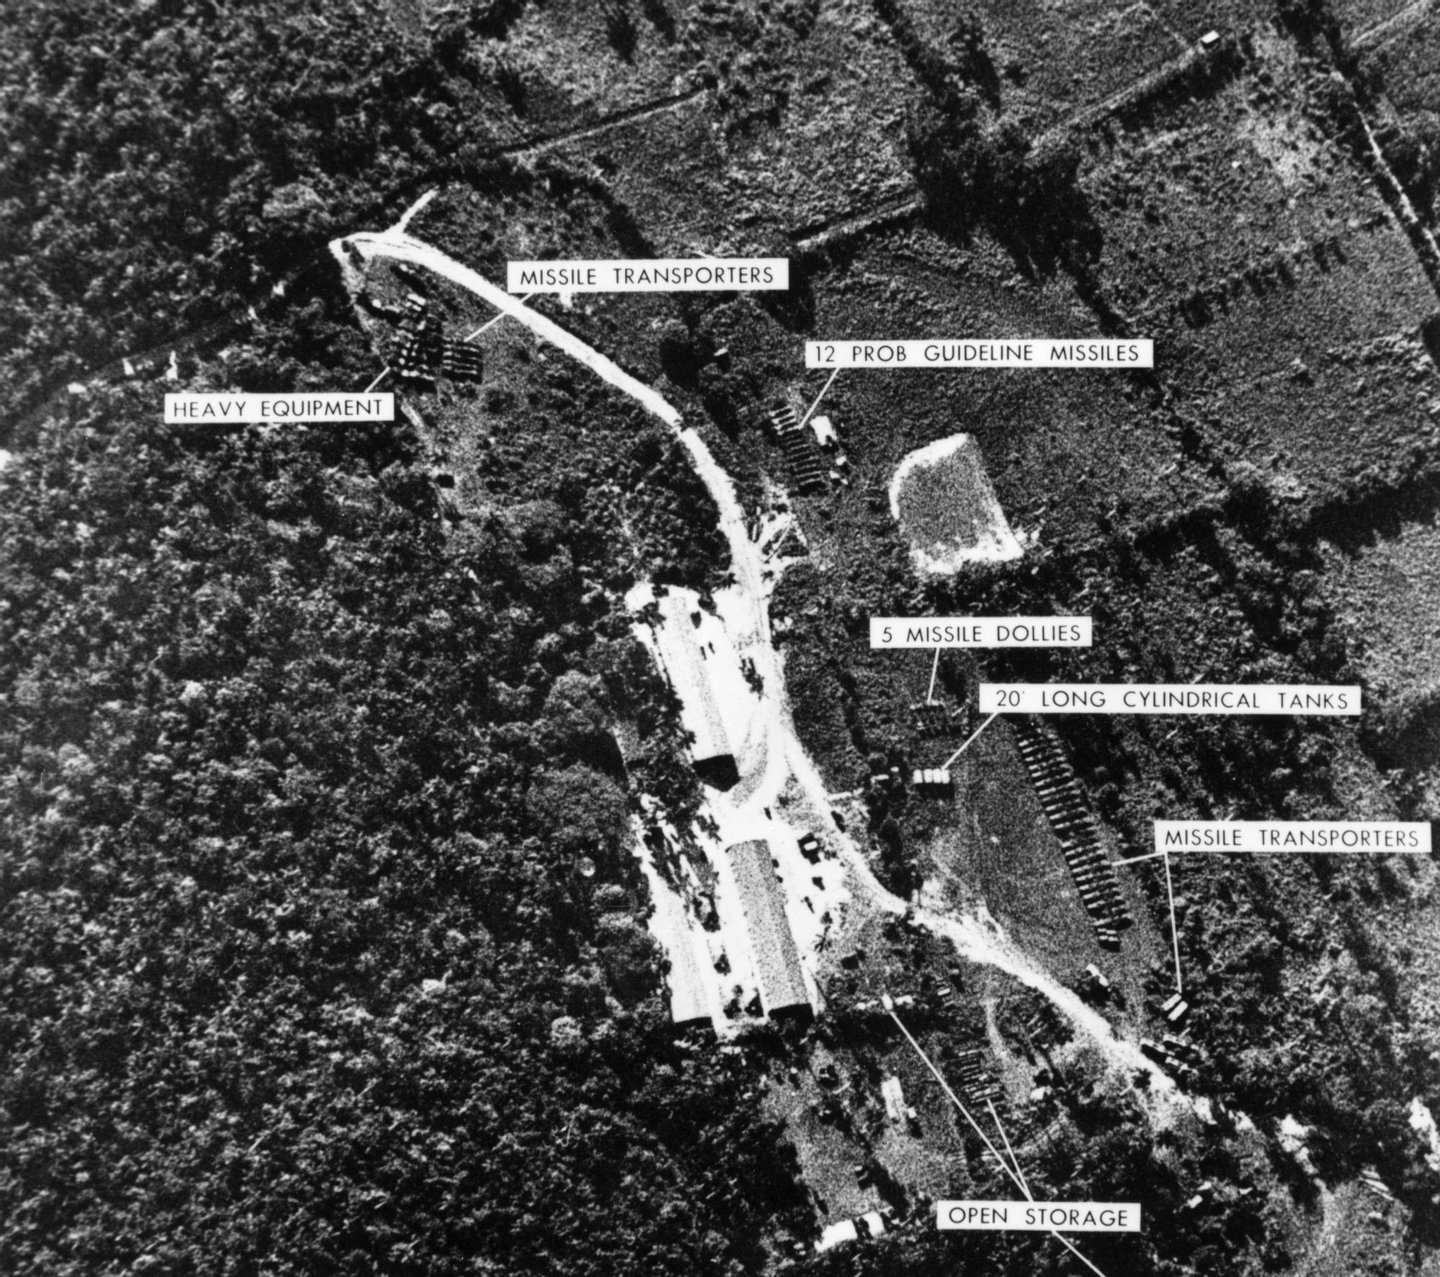 WASHINGTON - OCTOBER 24, 1962: (EDITORIAL USE ONLY) (FILE PHOTO) A photograph of a ballistic missile base in Cuba was used as evidence with which U.S. President John F. Kennedy ordered a naval blockade of Cuba during the Cuban missile crisis October 24, 1962. Former Russian and U.S. officials attending a conference commemorating the 40th anniversary of the missile crisis October 2002 in Cuba said that the world was closer to a nuclear conflict during the 1962 standoff between Cuba and the U.S., than governments were aware of. (Photo by Getty Images)